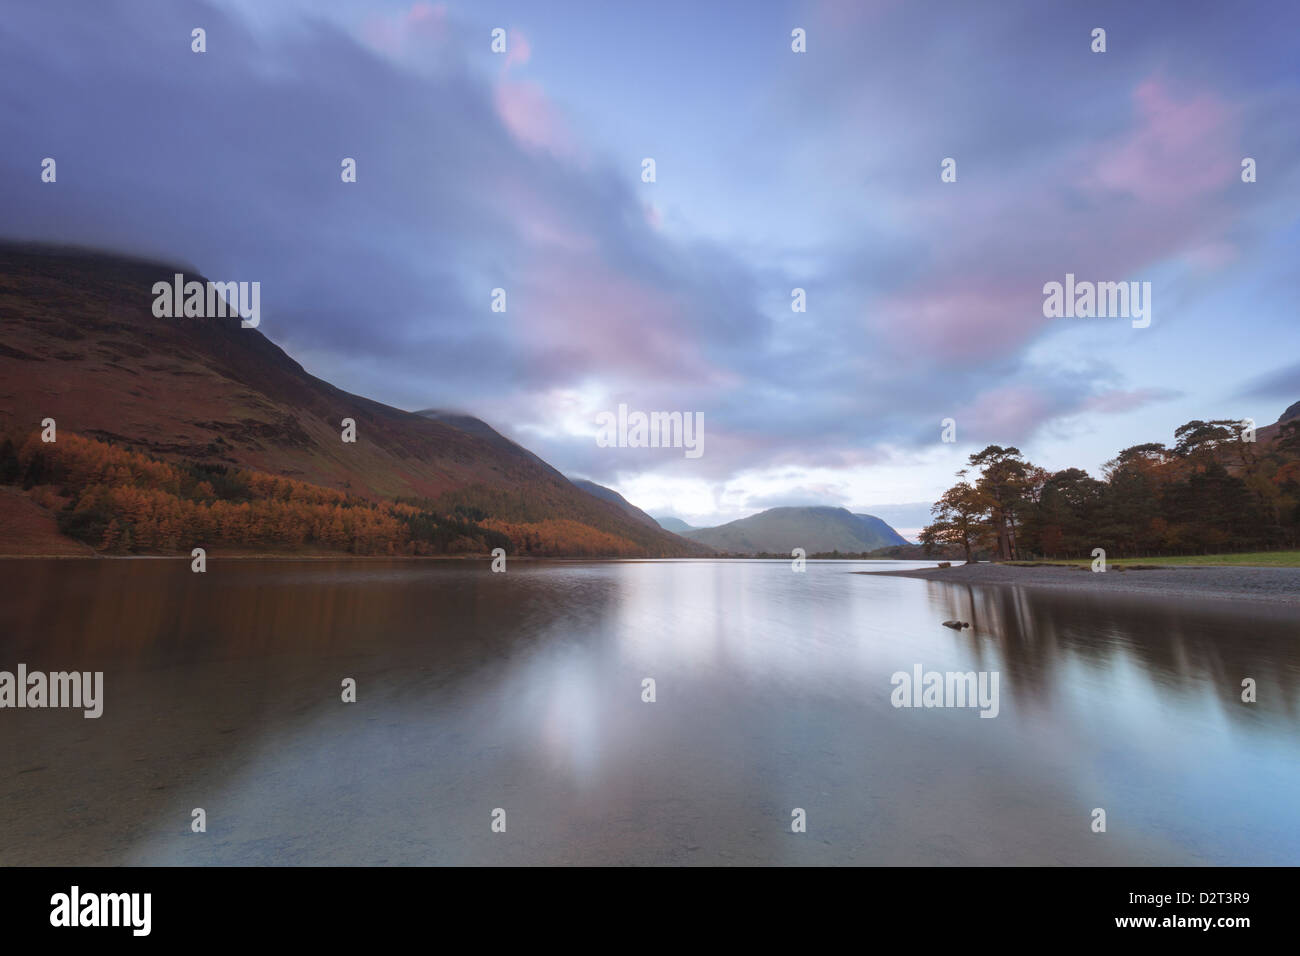 Buttermere at dusk, Lake District National Park, Cumbria, England, United Kingdom, Europe - Stock Image